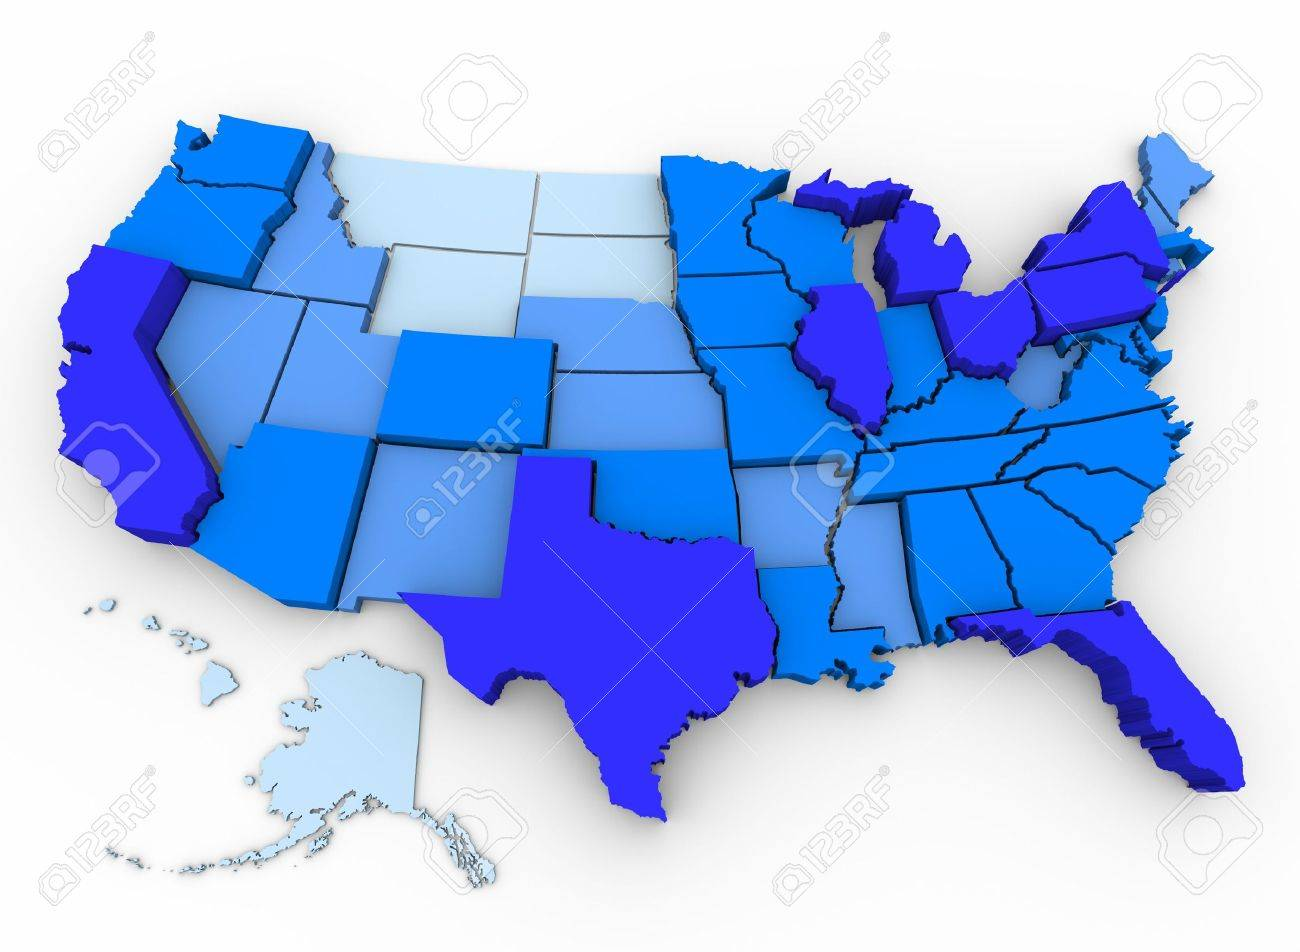 3d Map Of Us.A 3d Map Of The United States With The Most Populated States